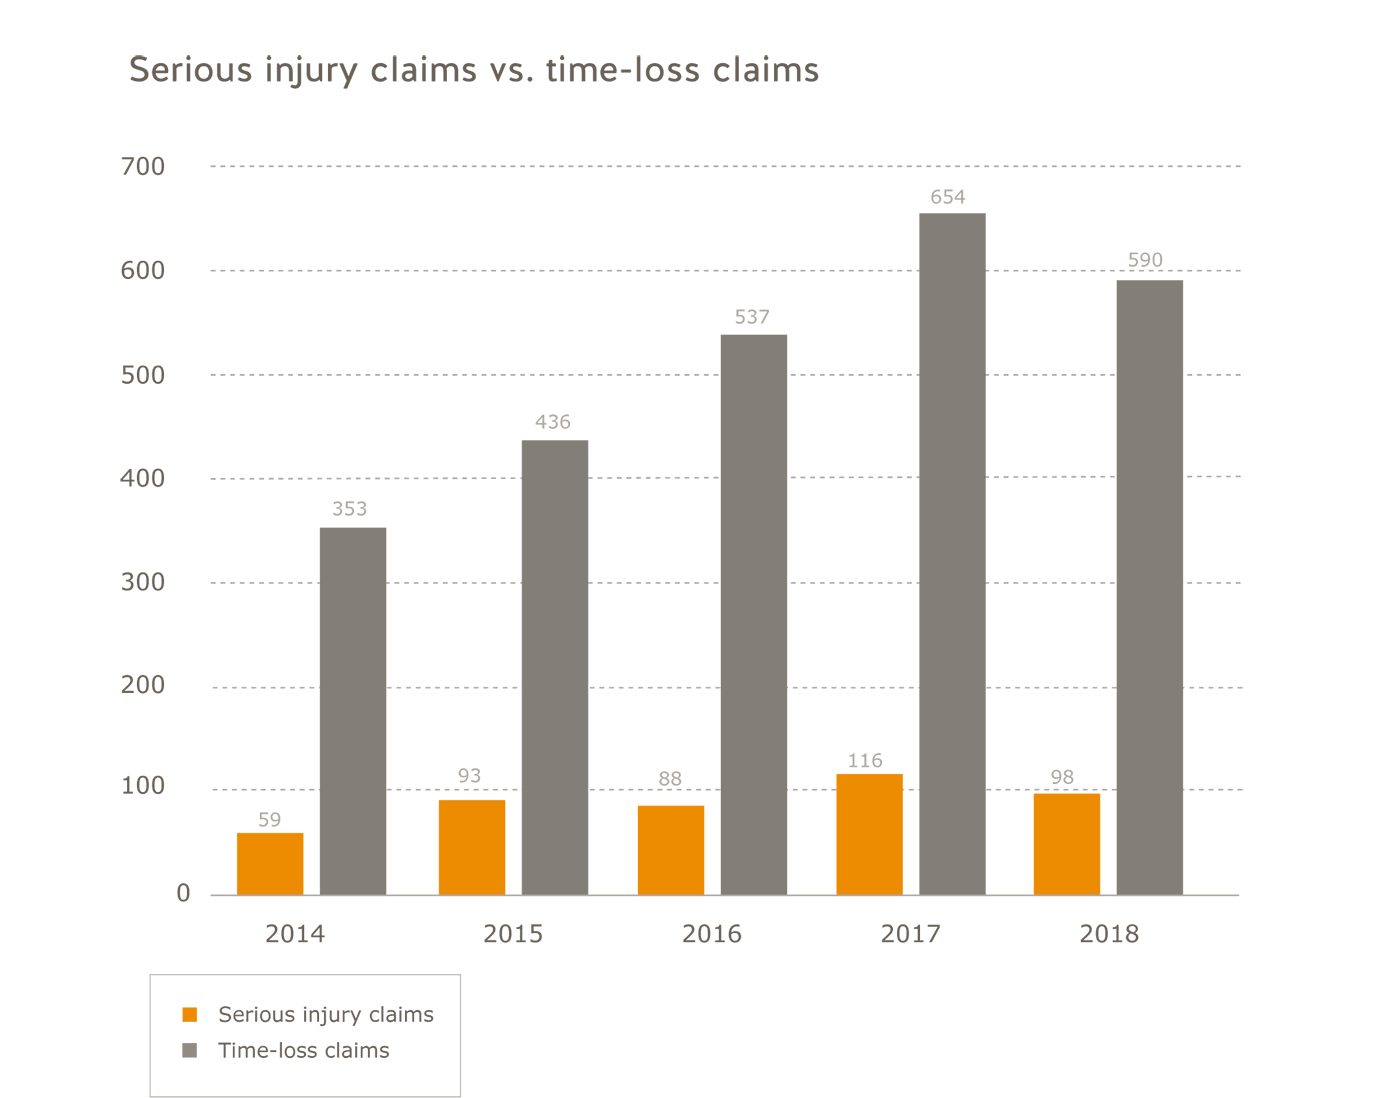 Performing arts serious injury claims vs. time-loss claims for 2014 to 2018. Serious injury claims: 2014=59; 2015=93; 2016=88; 2017=116; 2018=98. Time-loss claims: 2014=353; 2015=436; 2016=537; 2017=654, 2018=590